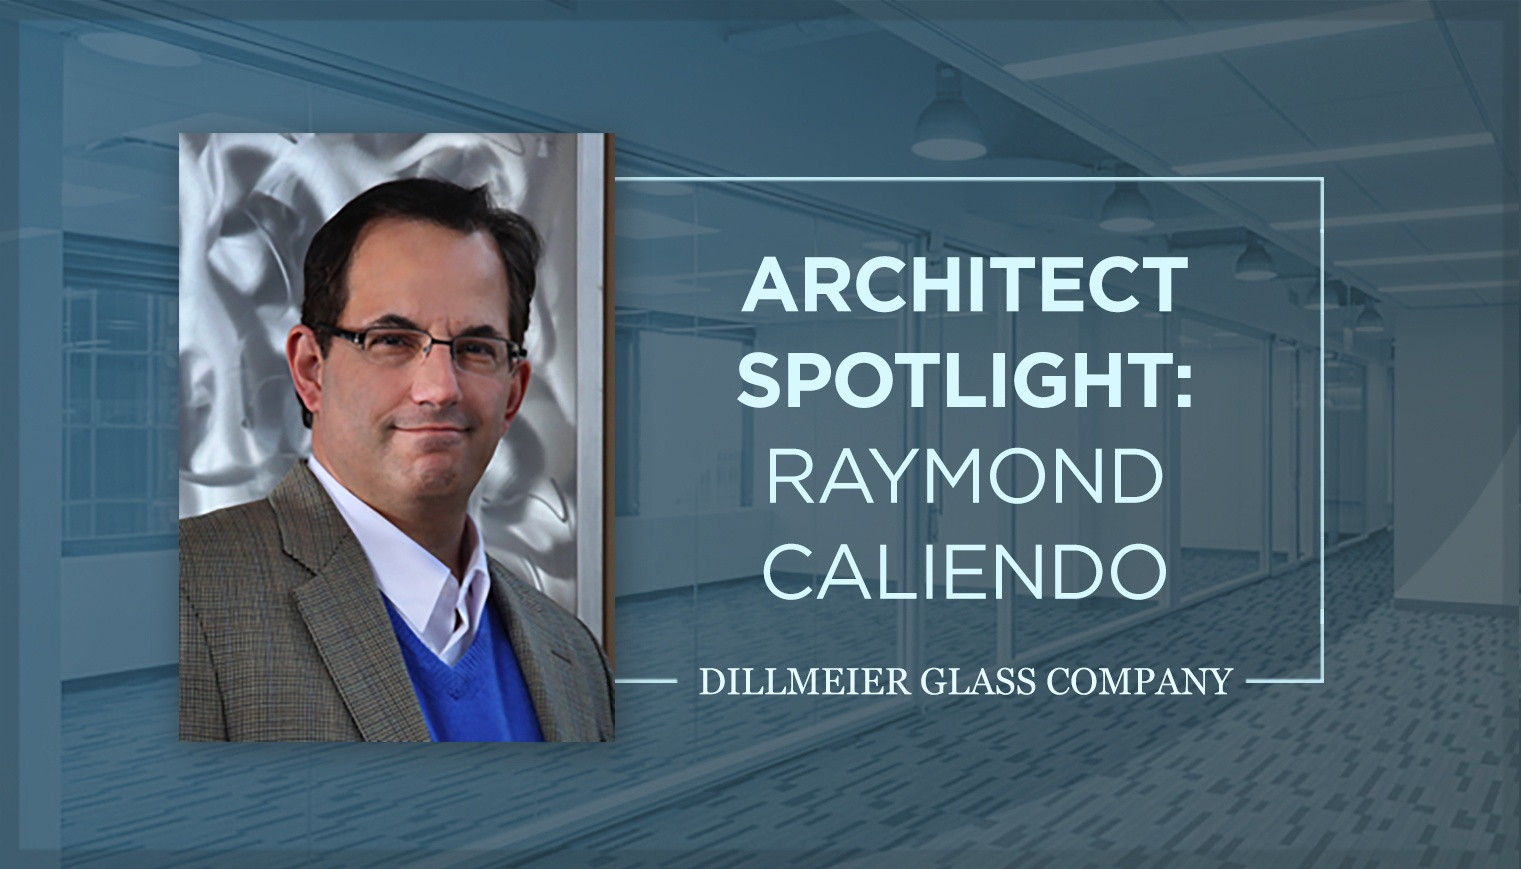 Architect Spotlight: Raymond Caliendo